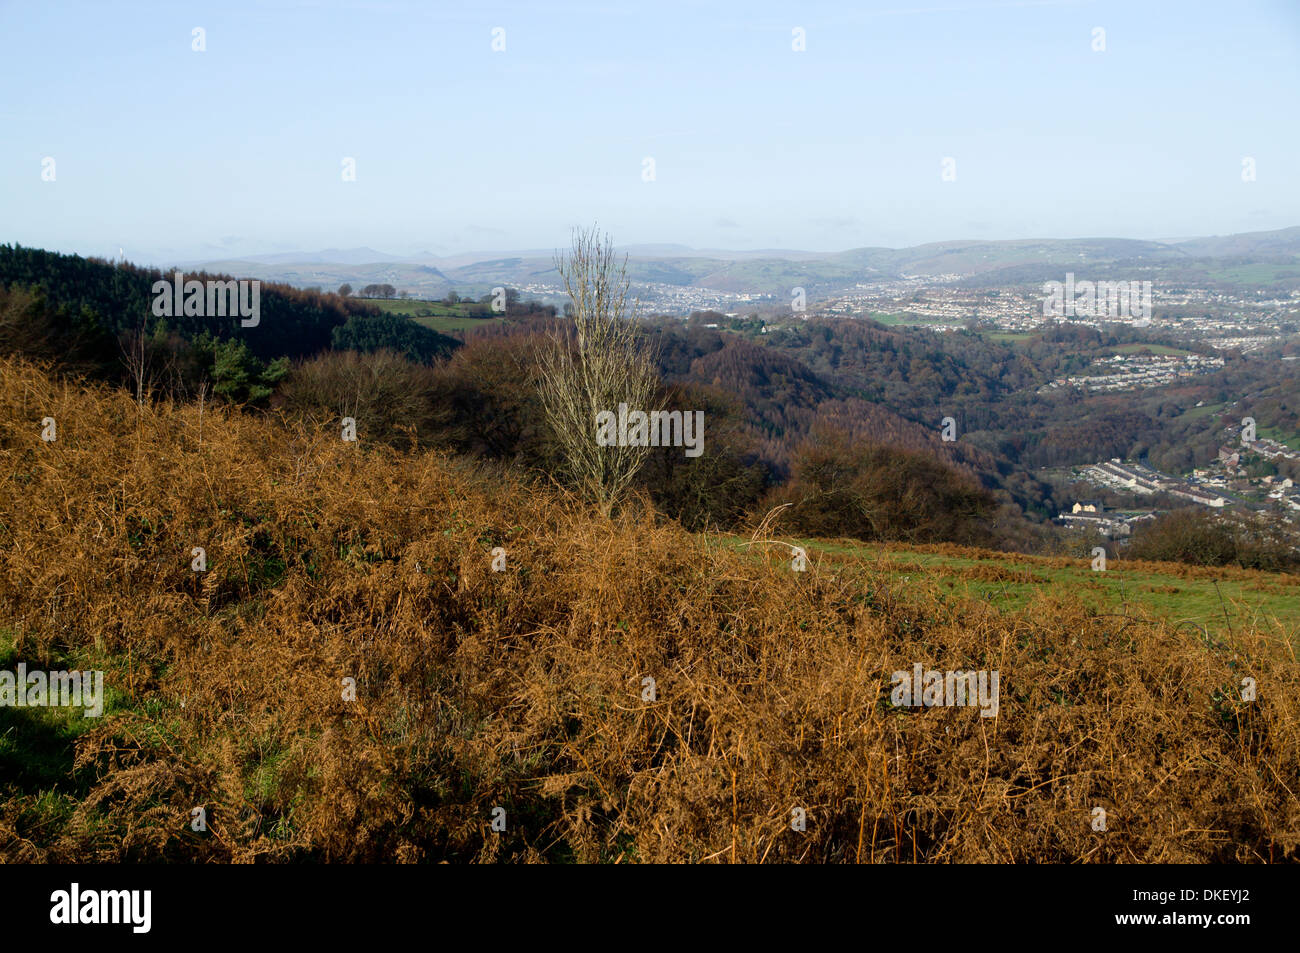 View from the Rhymney Valley Ridgway Footpath looking towards Pontllanfraith, Gwent, South Wales Valleys. Stock Photo